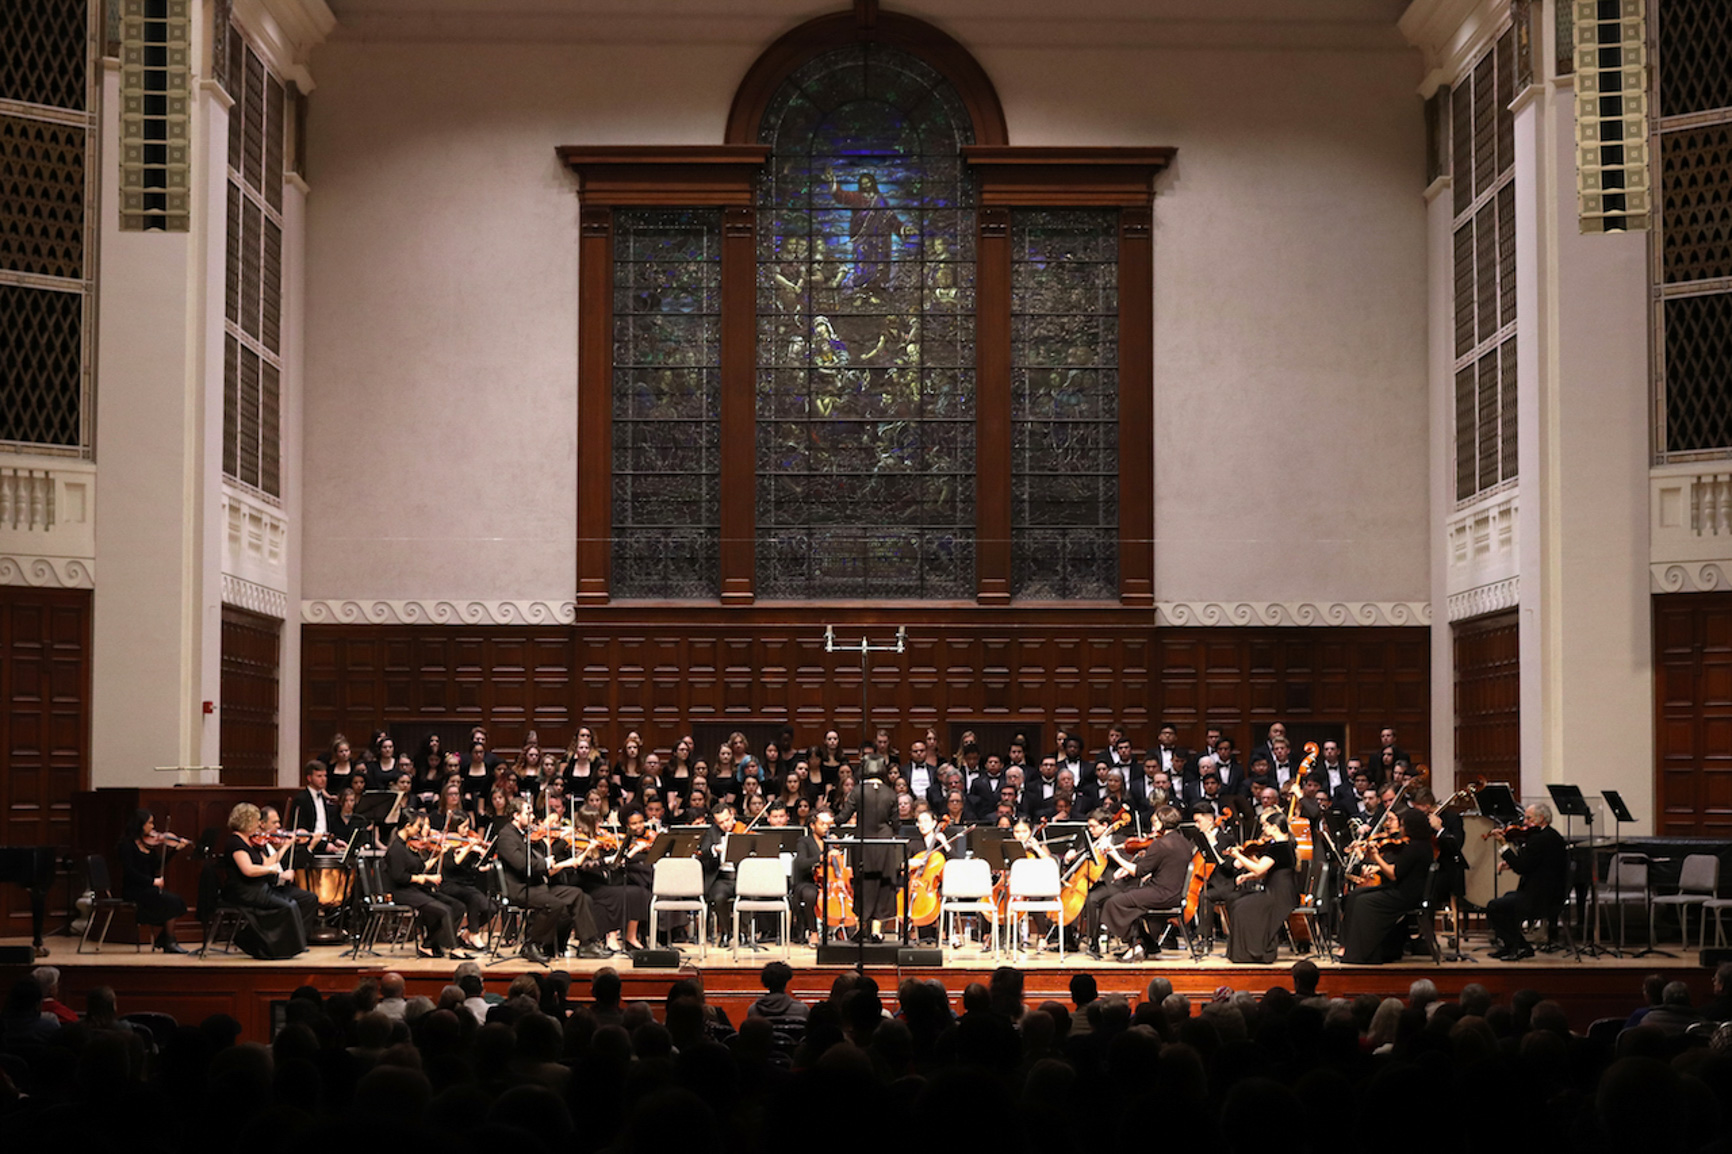 UNIVERSITY OF REDLANDS' ORCHESTRA PERFORMS 9TH SYMPHONY